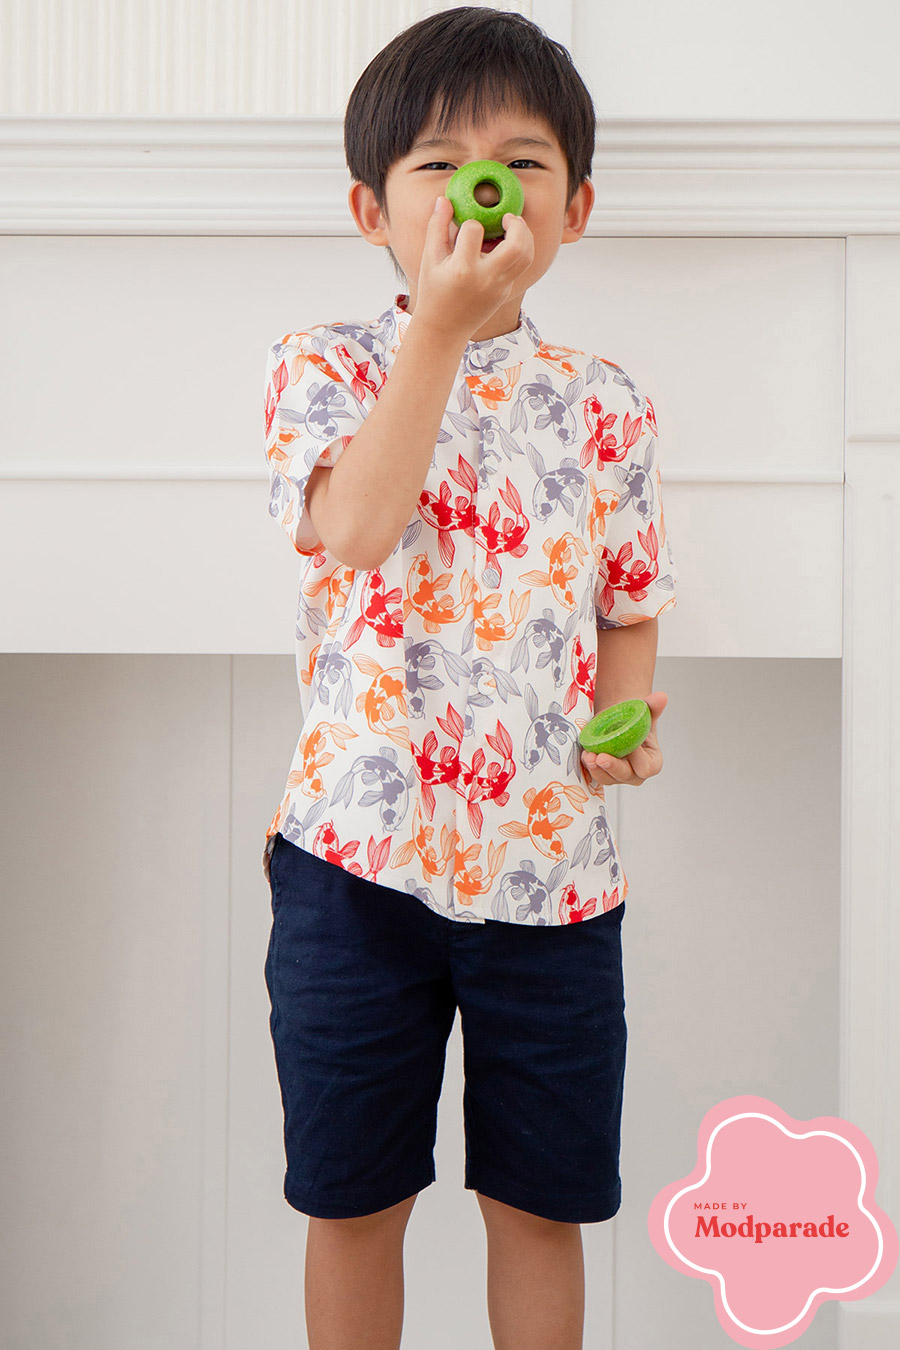 NOAH JUNIOR SHIRT - KINGYO [BY MODPARADE]